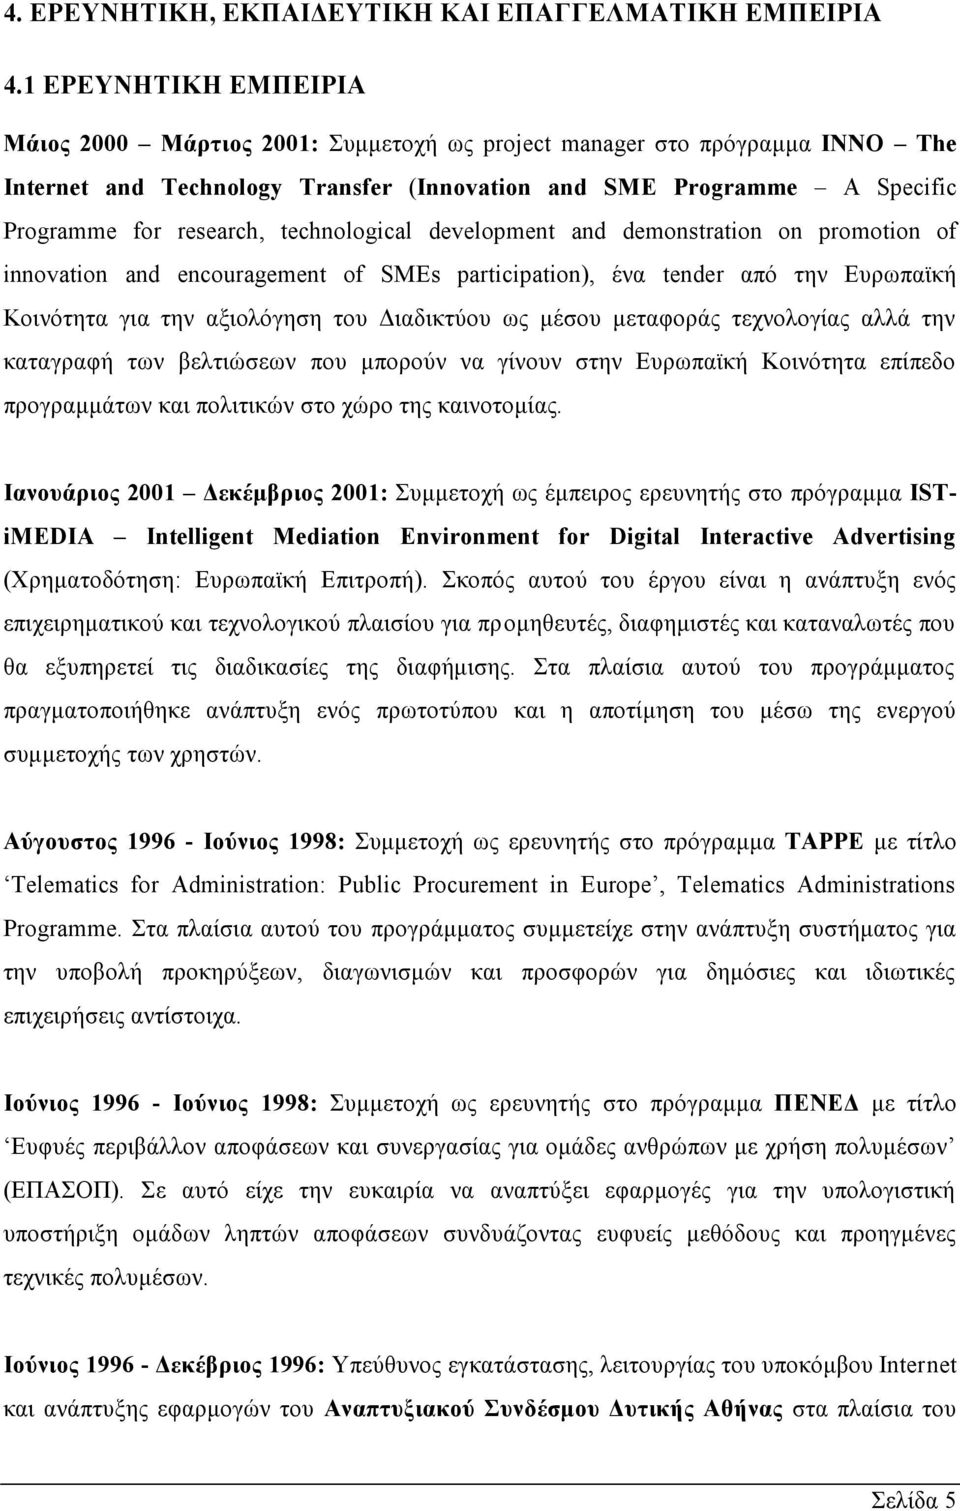 technological development and demonstration on promotion of innovation and encouragement of SMEs participation), ένα tender από την Ευρωπαϊκή Κοινότητα για την αξιολόγηση του Διαδικτύου ως μέσου